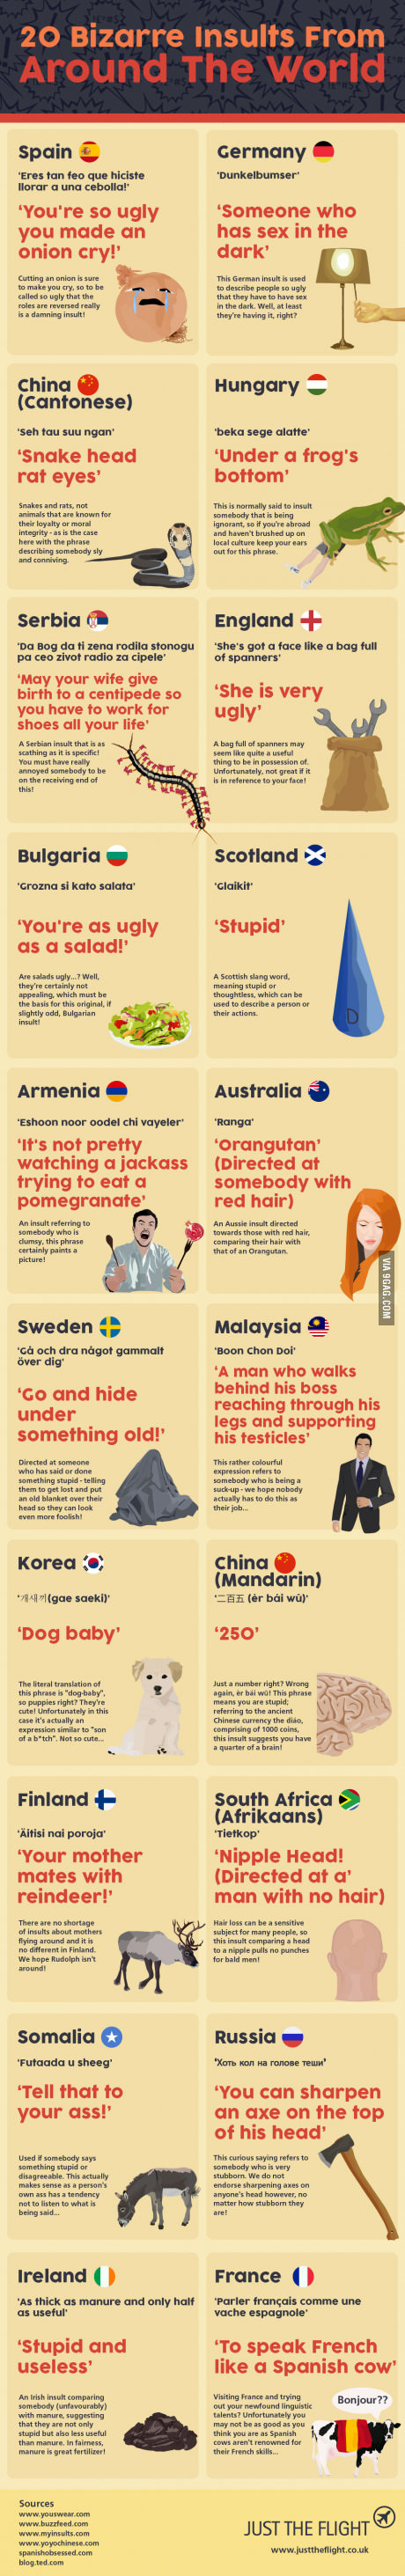 20 Bizarre insults around the world